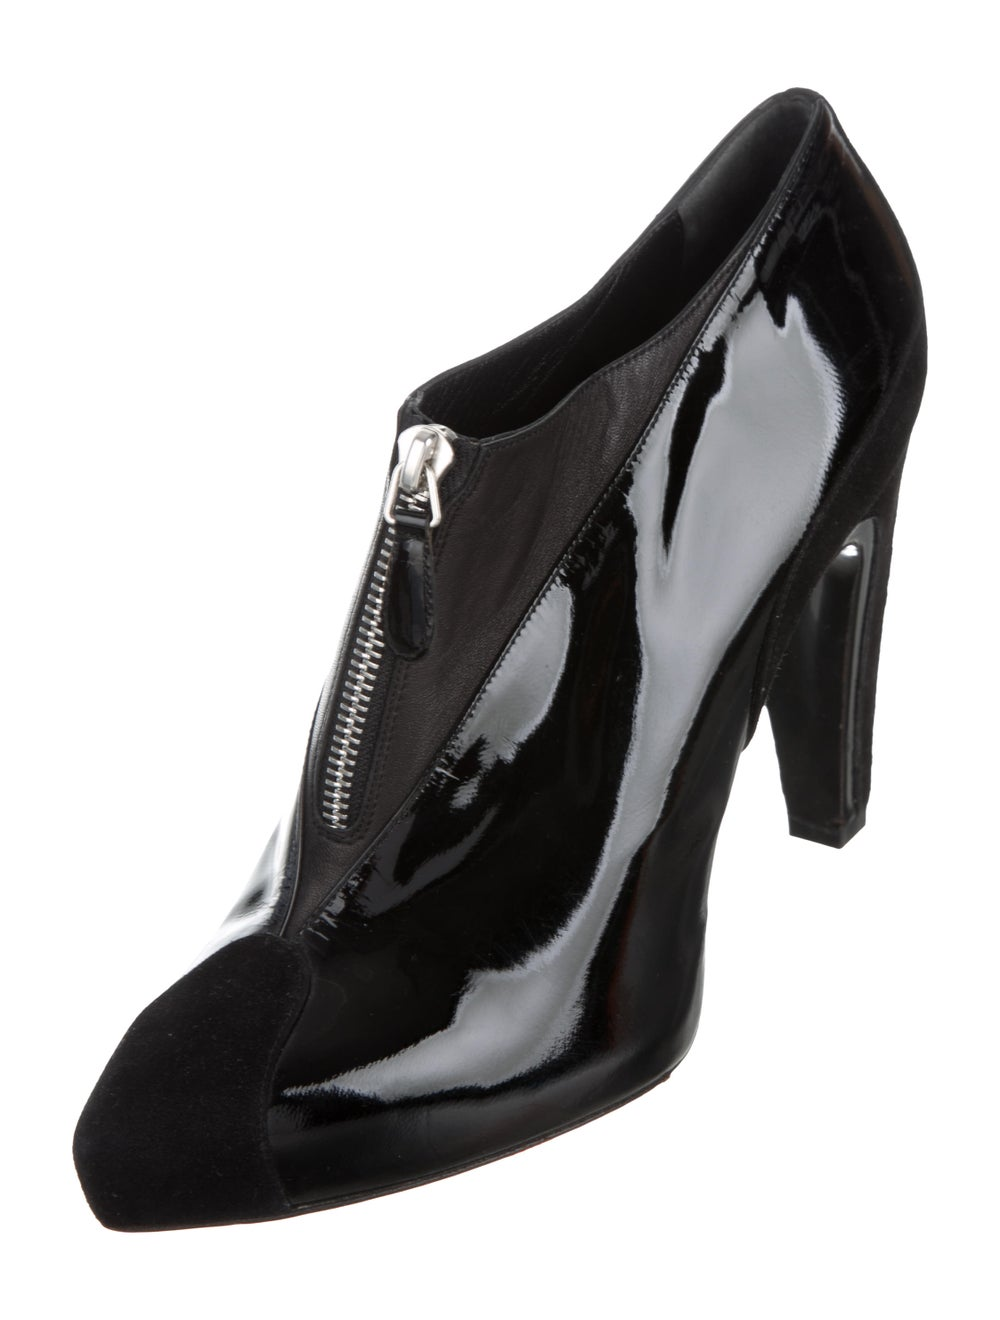 Balenciaga Cap-Toe Patent Leather Ankle Booties B… - image 2